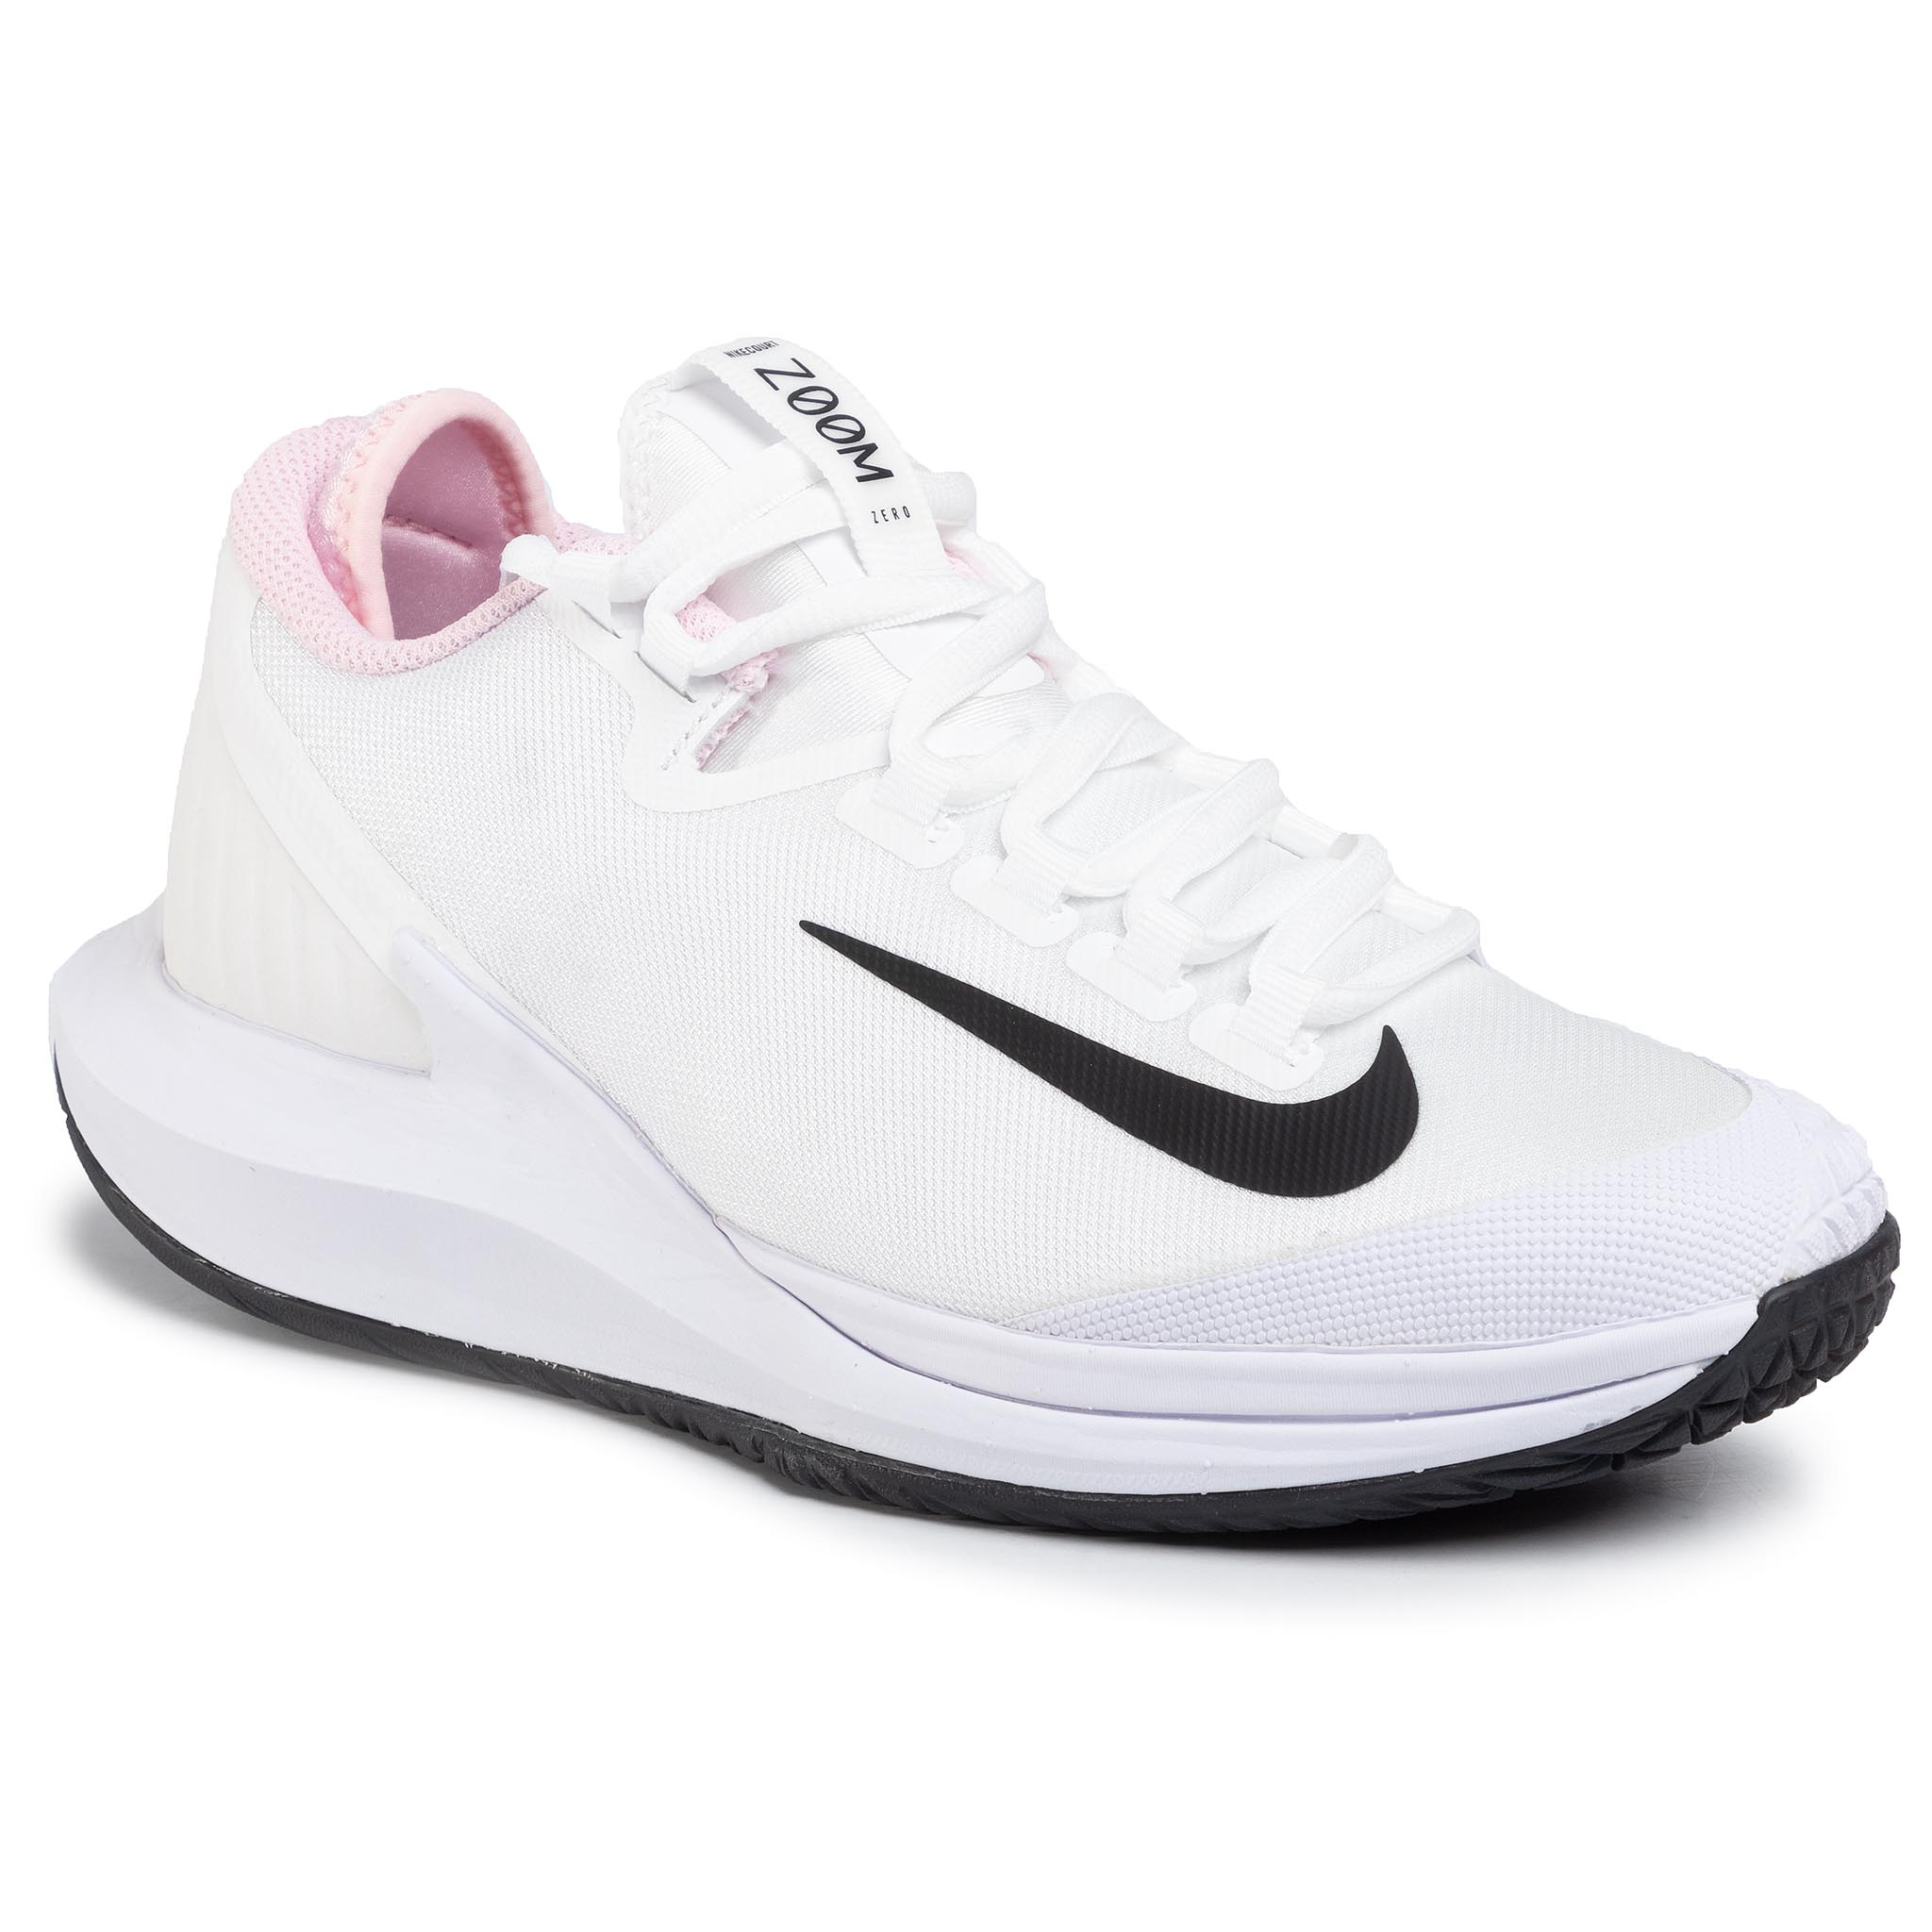 Pantofi Nike - Nikecourt Air Zoom Zero Hc Aa8022 105 White/Black/Pink Foam imagine epantofi.ro 2021